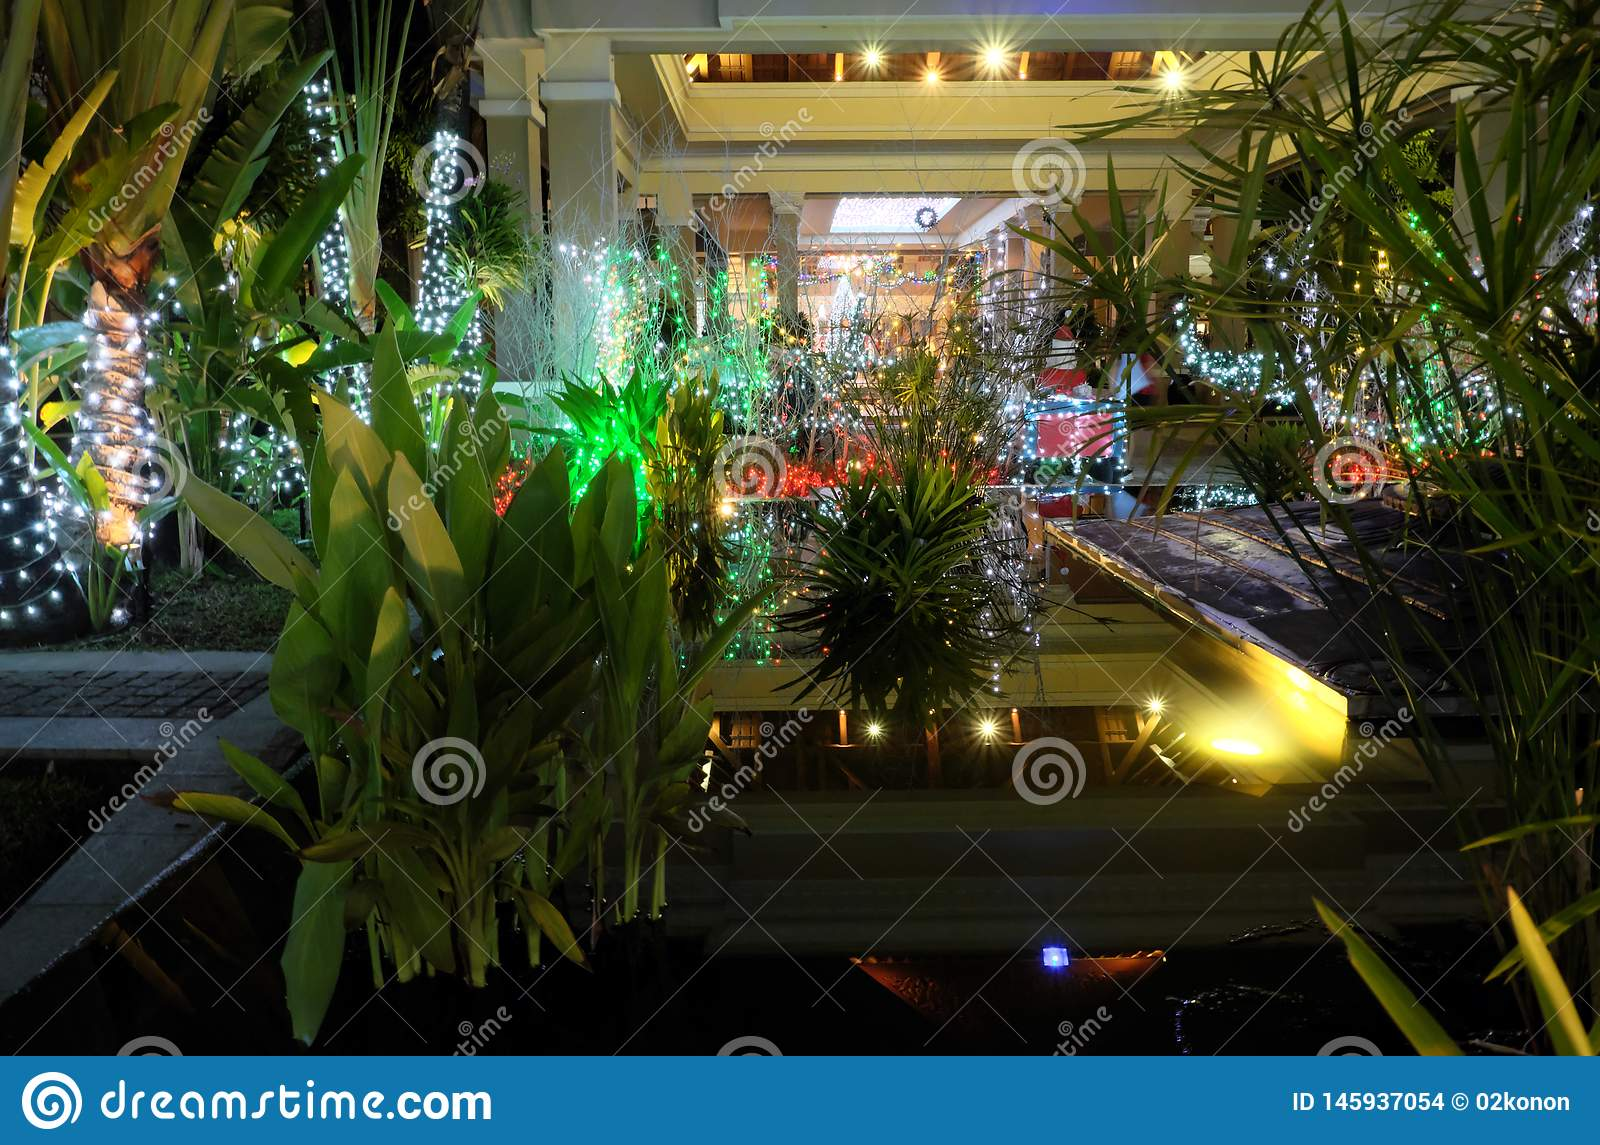 Small Tropical Garden, Decorated With Christmas ...